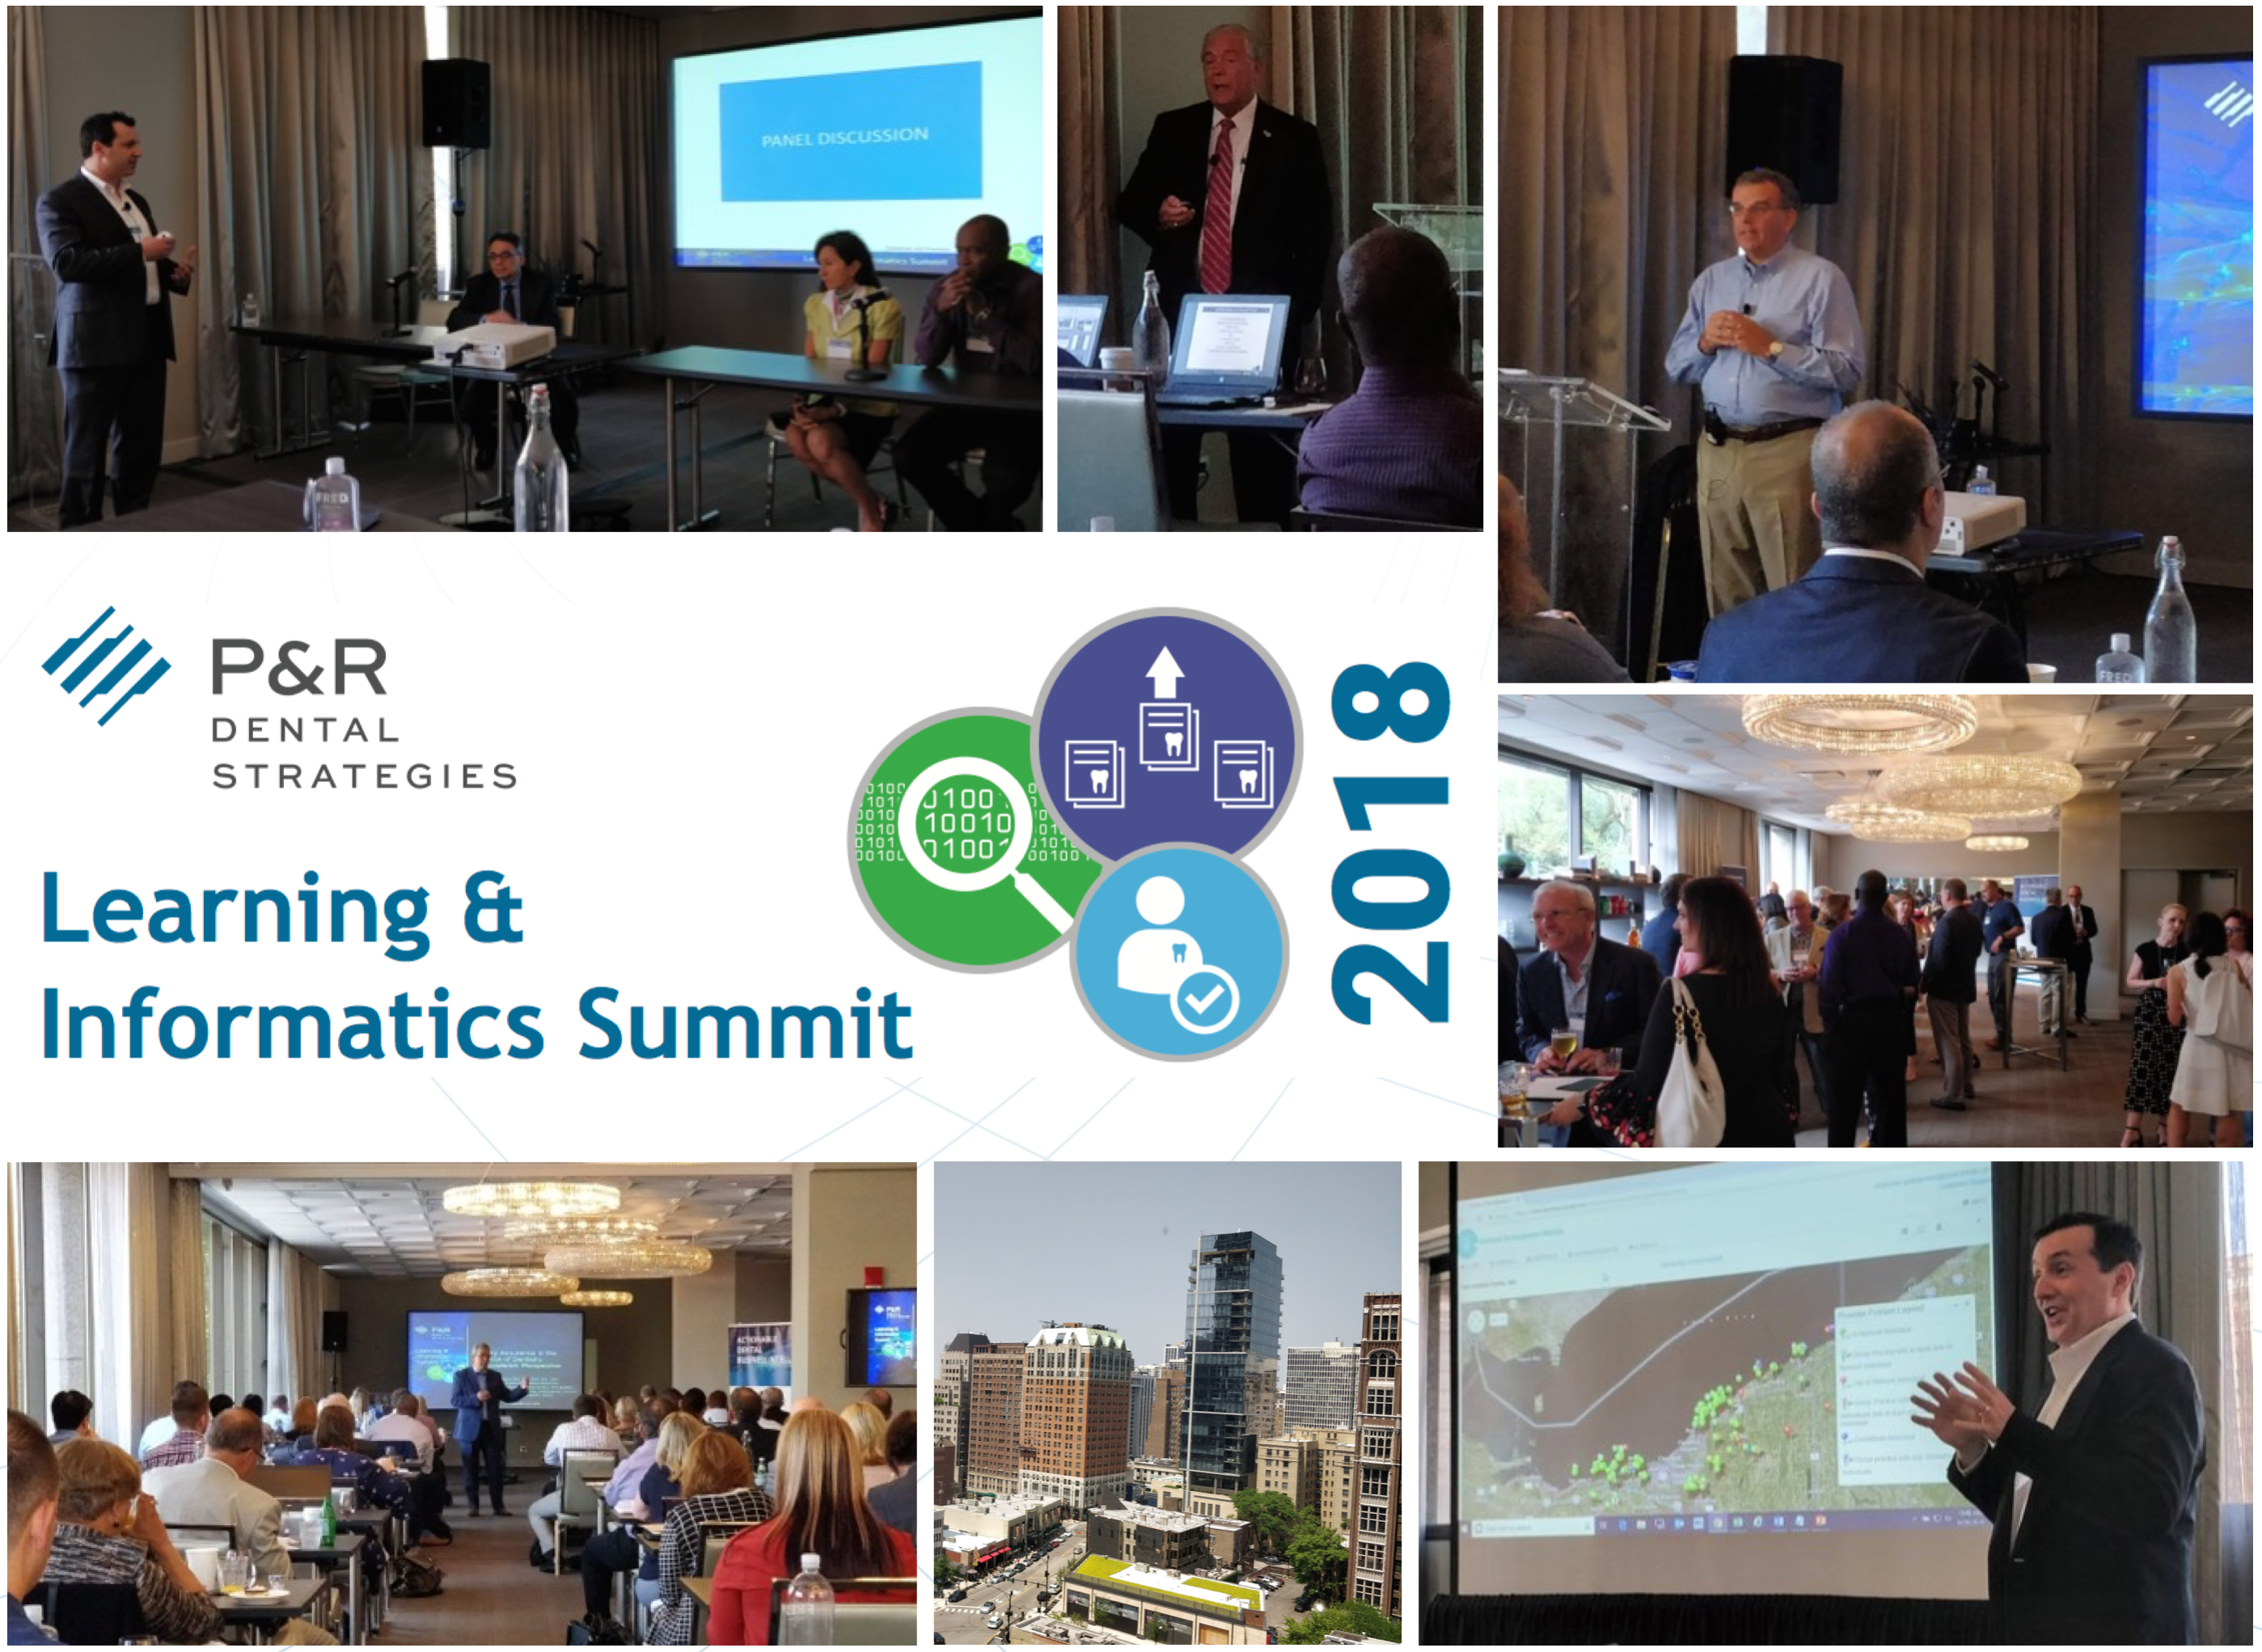 The 2018 Learning & Informatics Summit